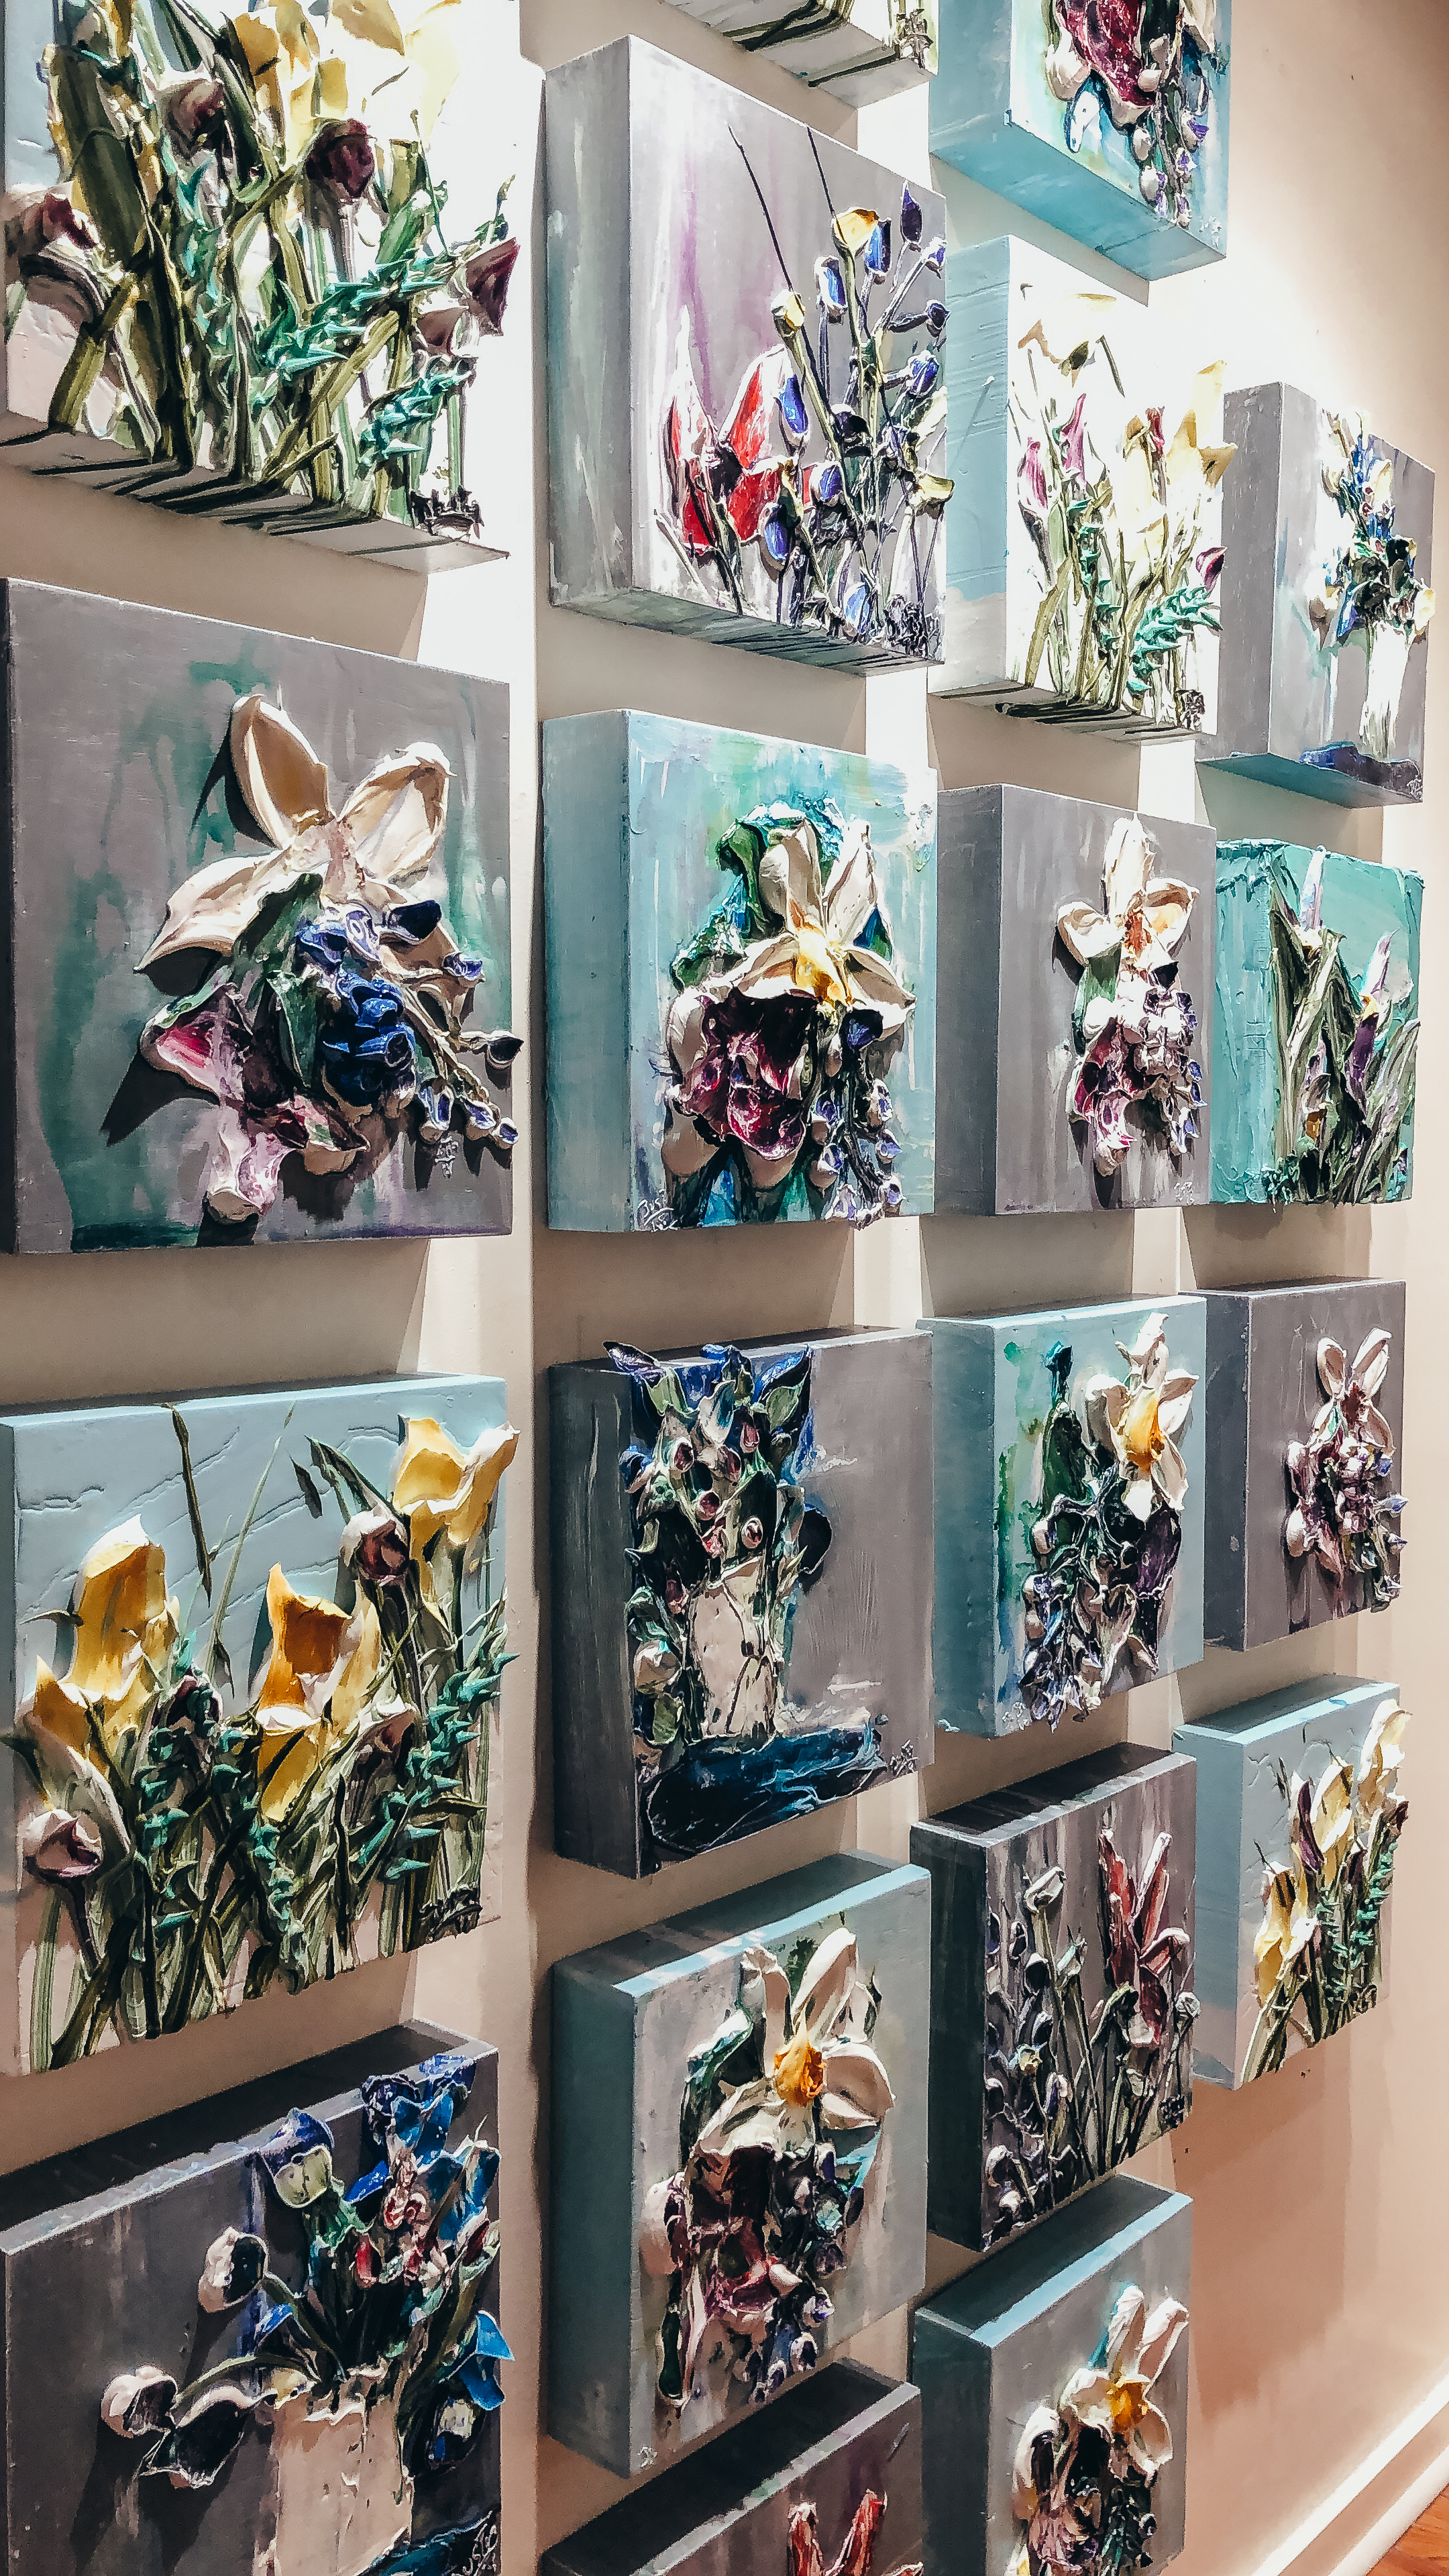 Some cool art we came across during our trip along Florida's 30A | Hello Gorgeous by Angela Lanter